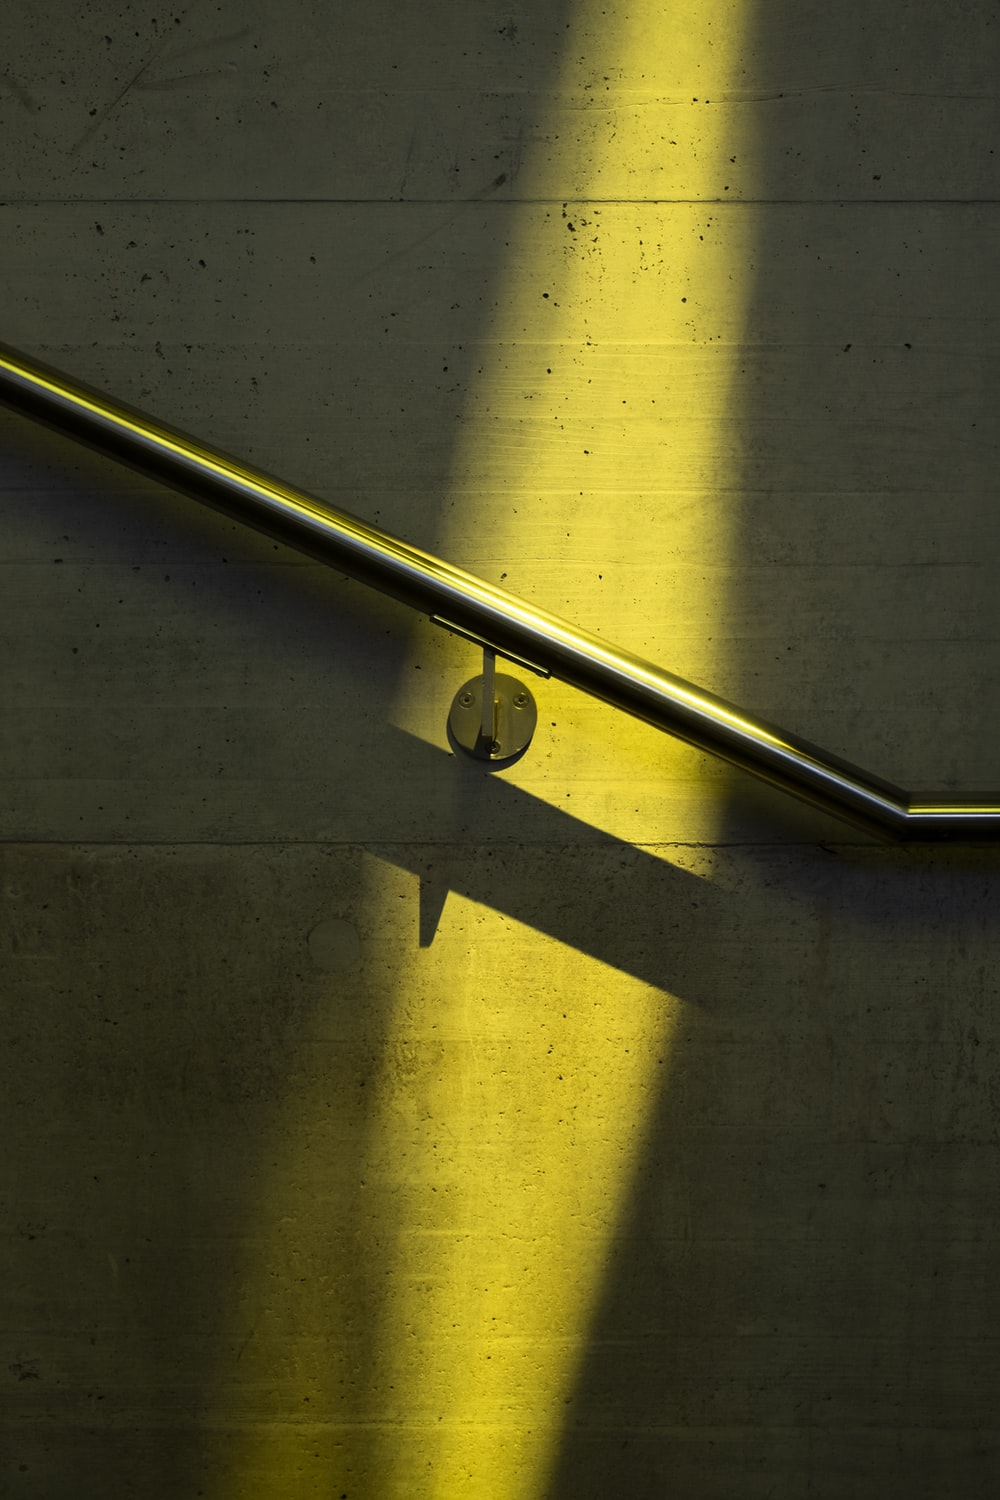 stainless steel railings on yellow and white painted wall